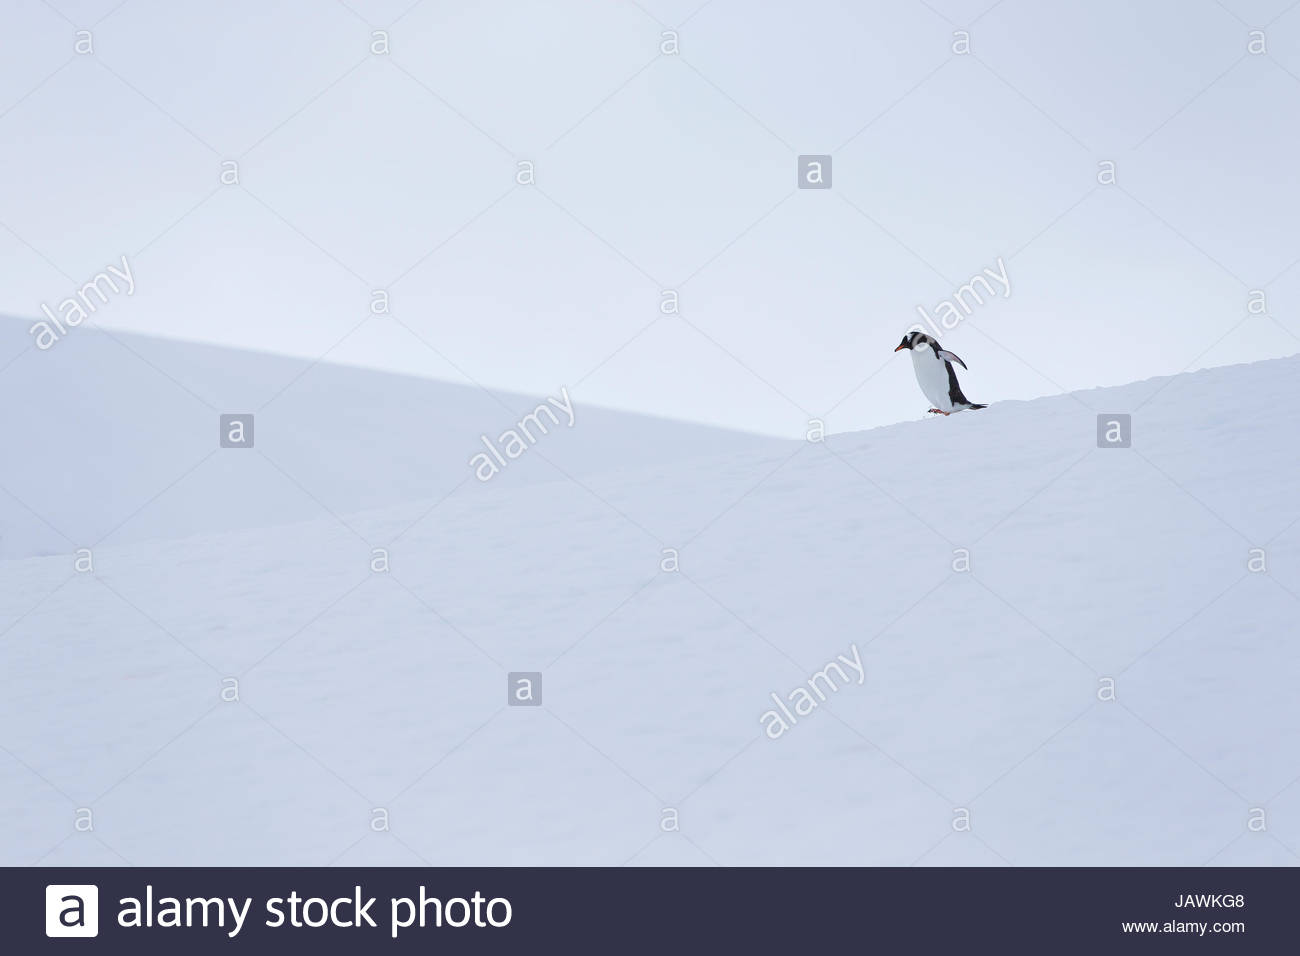 Gentoo penguin during snow and whiteout conditions in Antarctica. - Stock Image